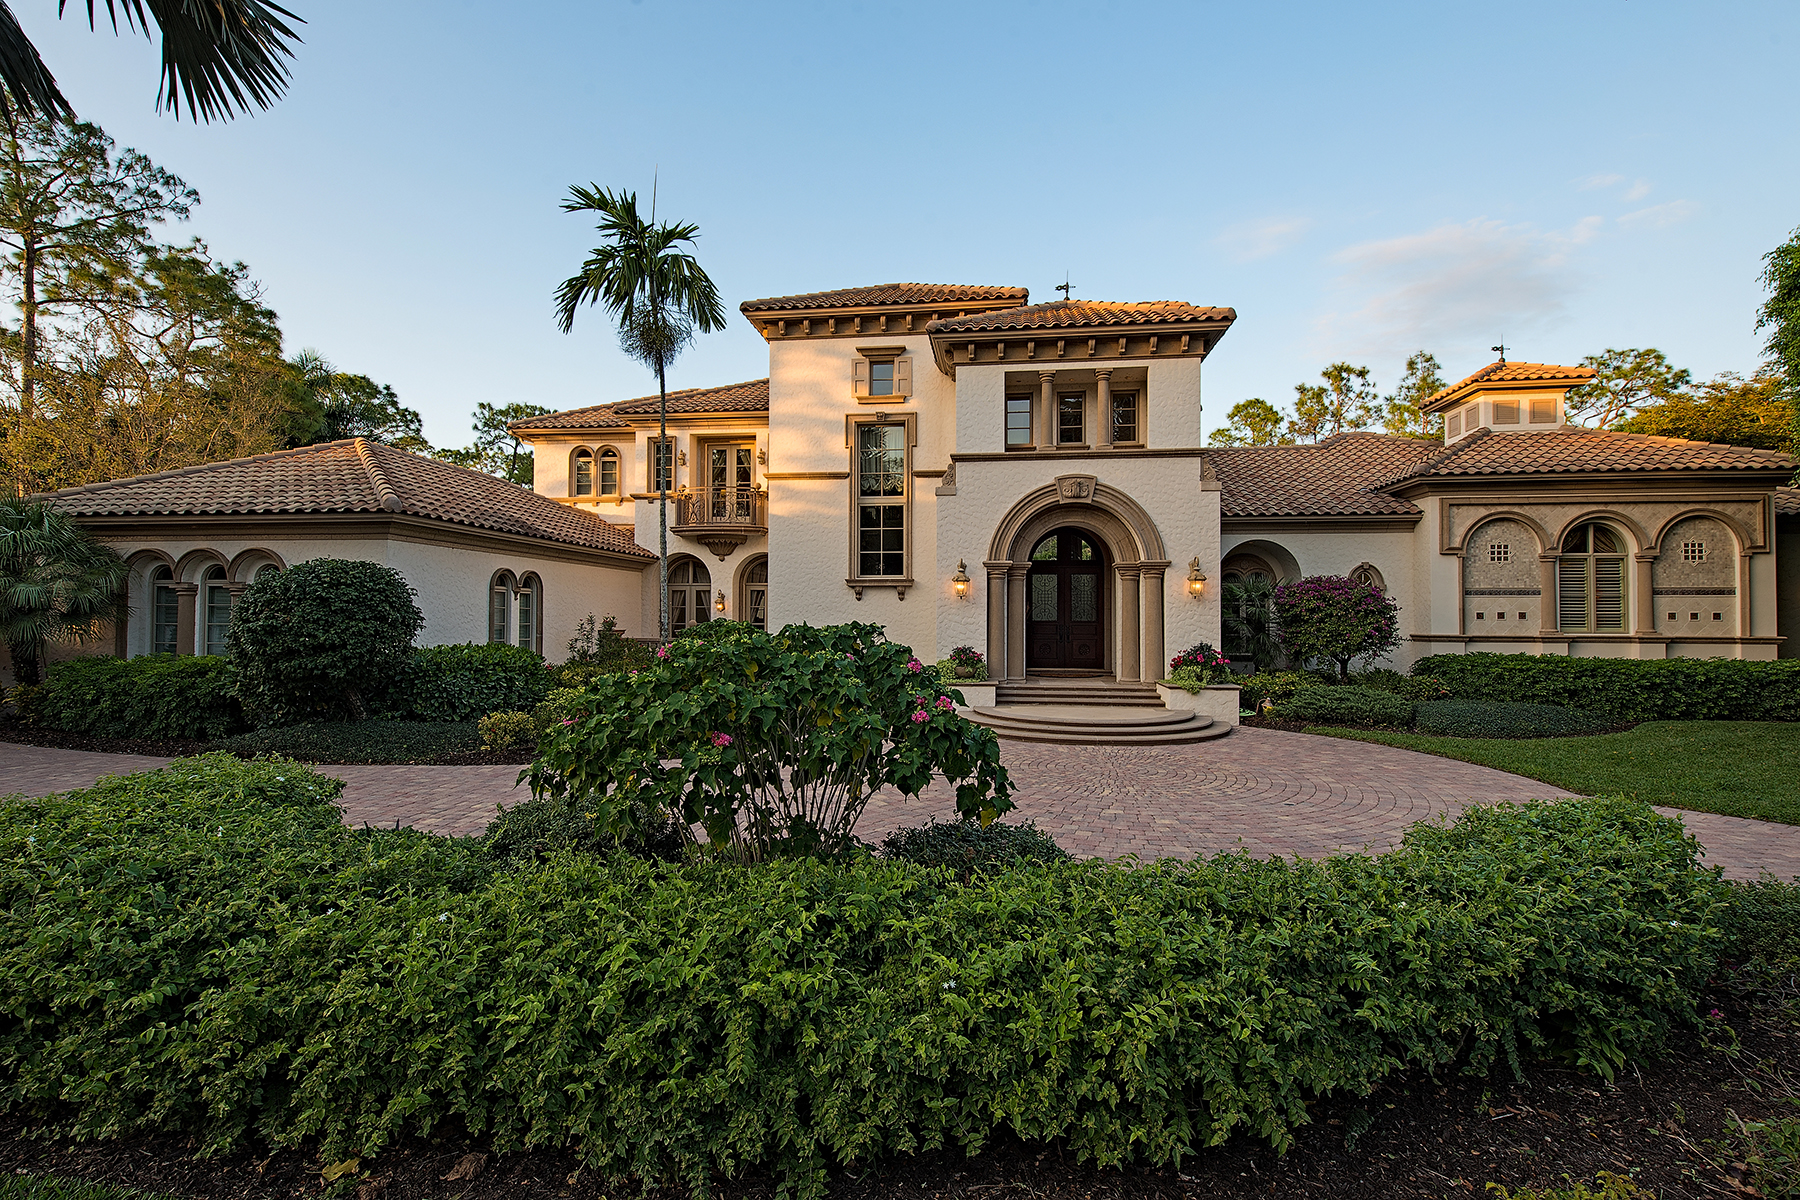 Single Family Home for Rent at QUAIL WEST - QUAIL WEST 6529 Highcroft Dr Naples, Florida 34119 United States